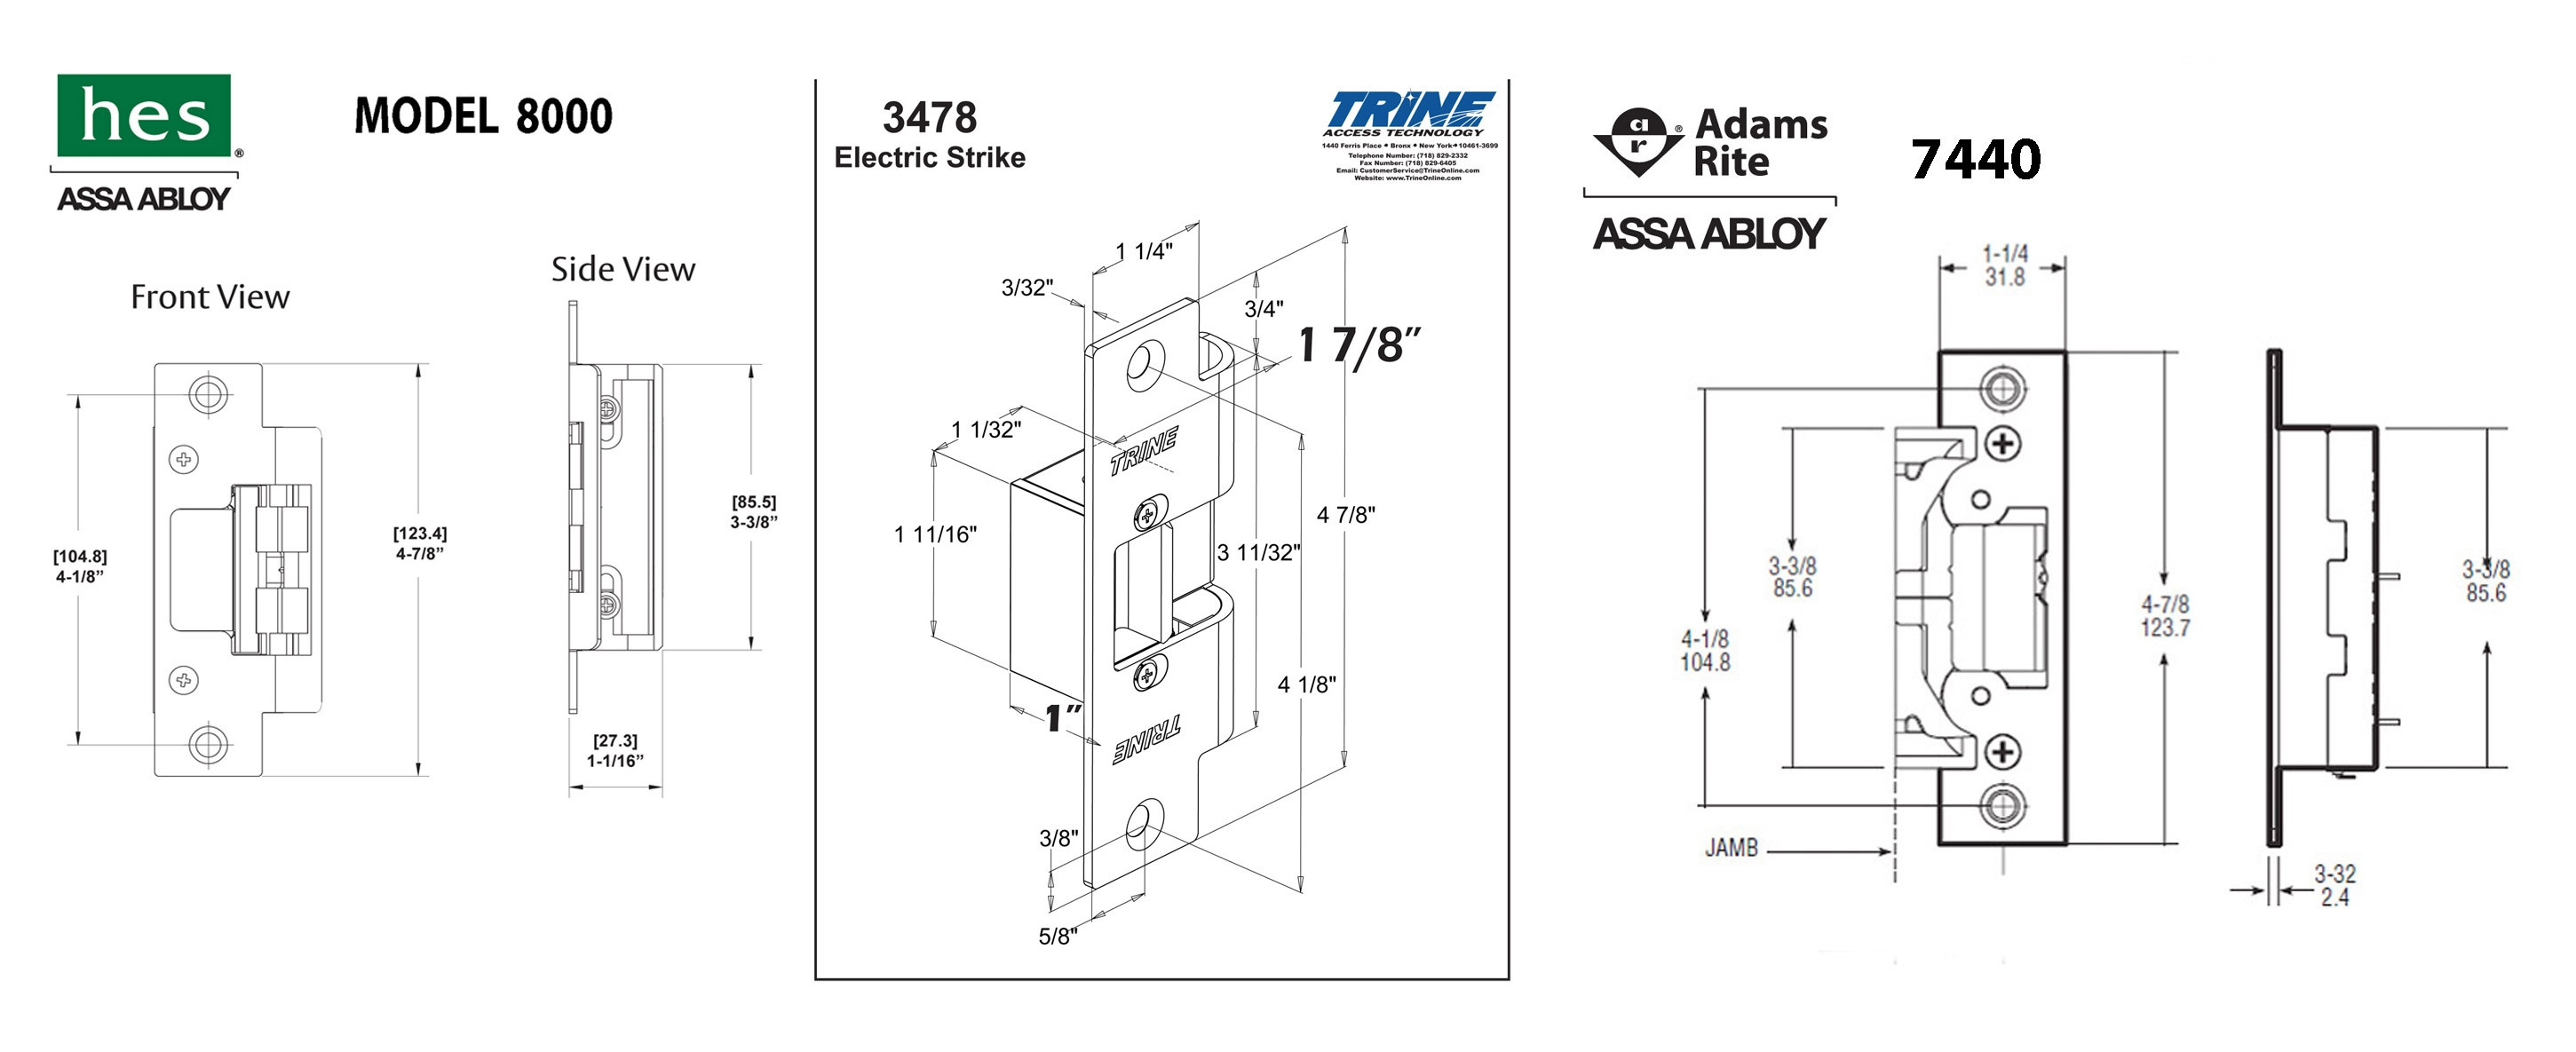 Electric Door Strike Wiring Diagram Free Electrical Schematics In Series For Magnetic Lock Fresh Hes 5000